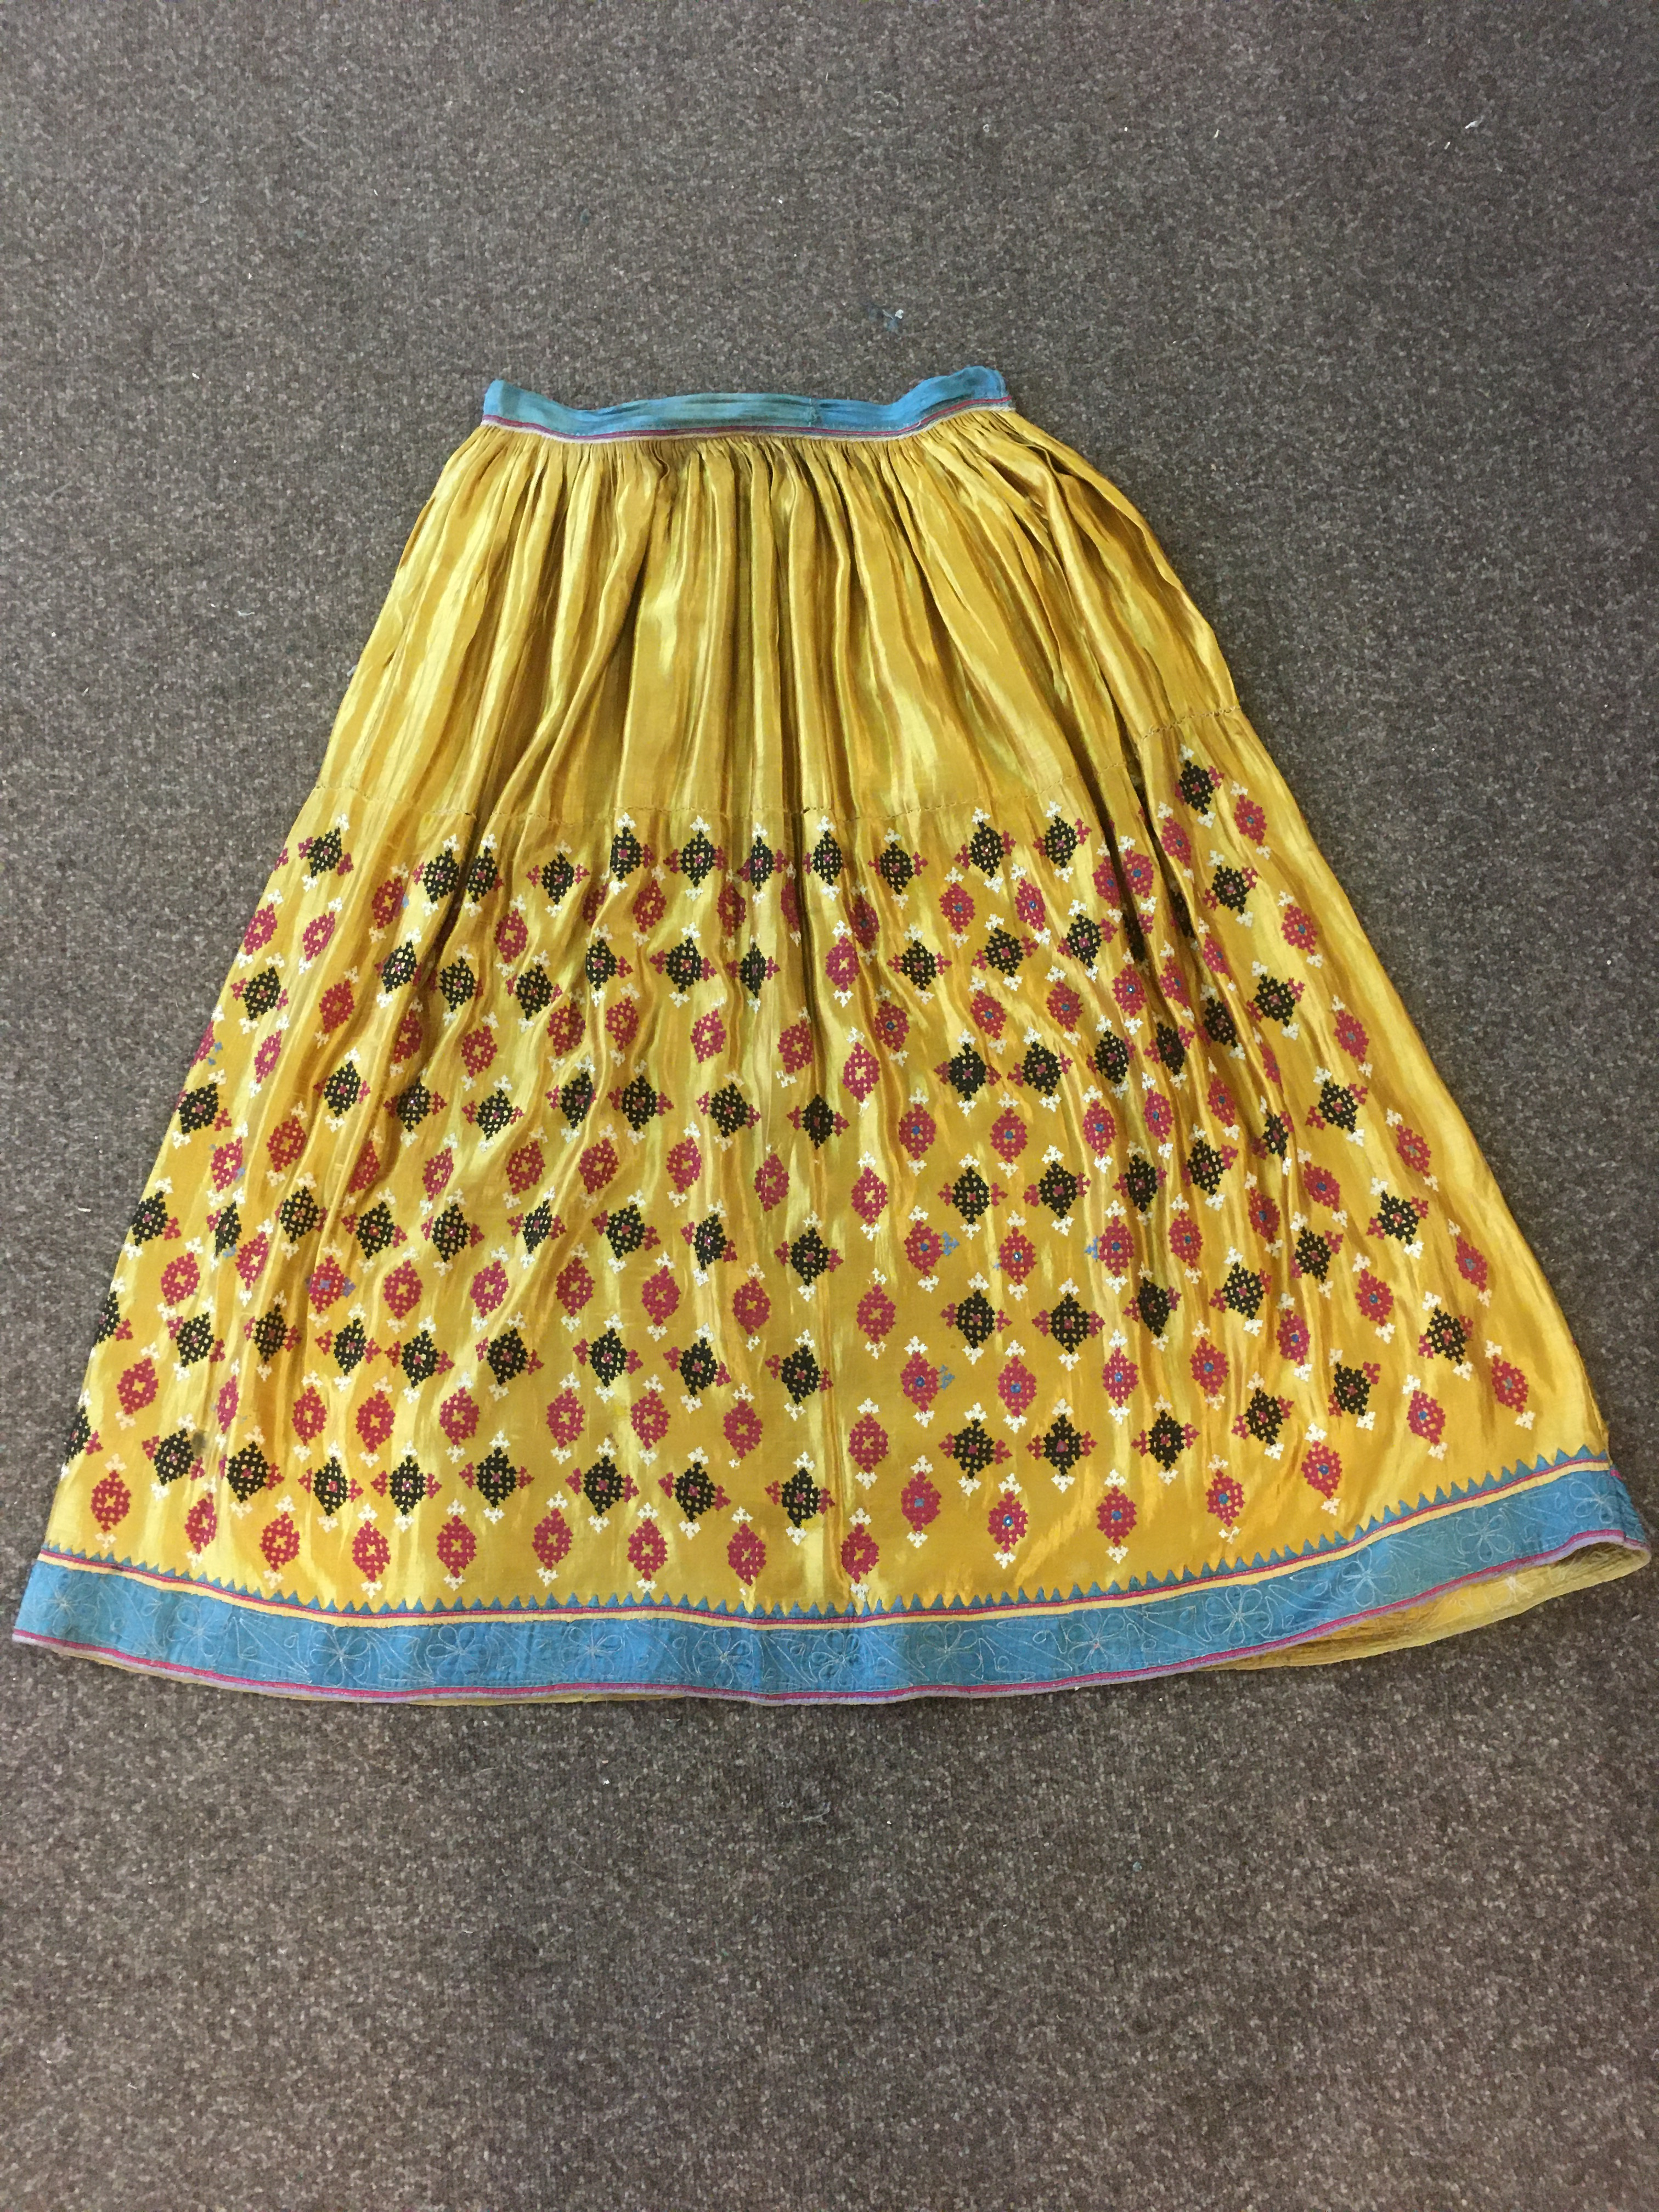 ANTIQUE INDIAN SKIRT a full length gathered skirt made from 19thc gold coloured silk, embroidered - Image 2 of 5